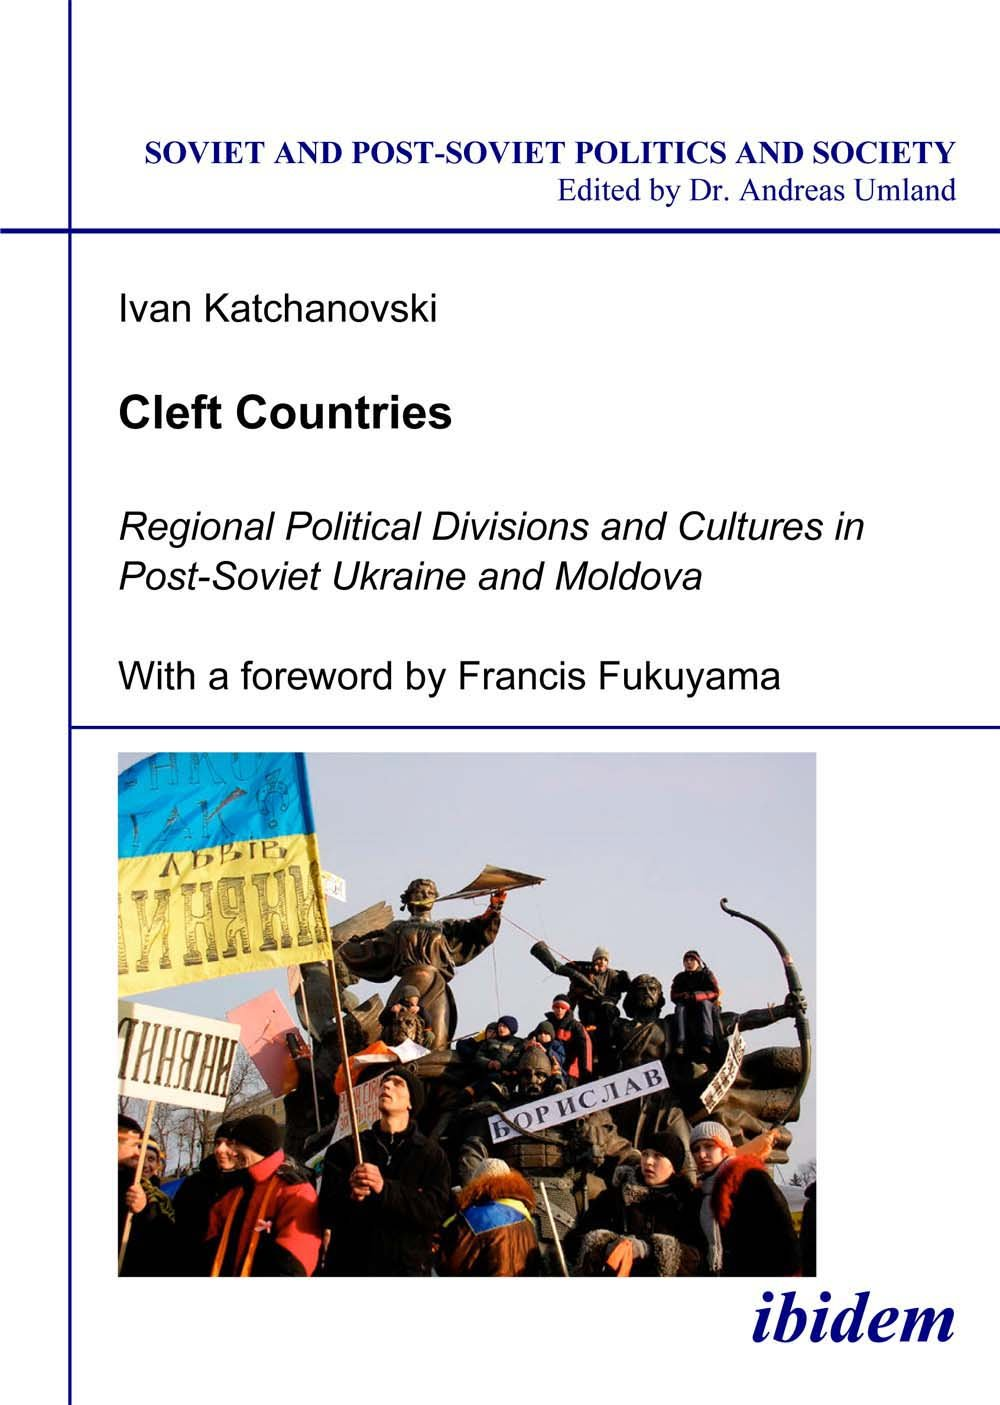 Cleft Countries: Regional Political Divisions and Cultures in Post-Soviet Ukraine and Moldova (Soviet and Post-Soviet Politics and Society 33) PDF